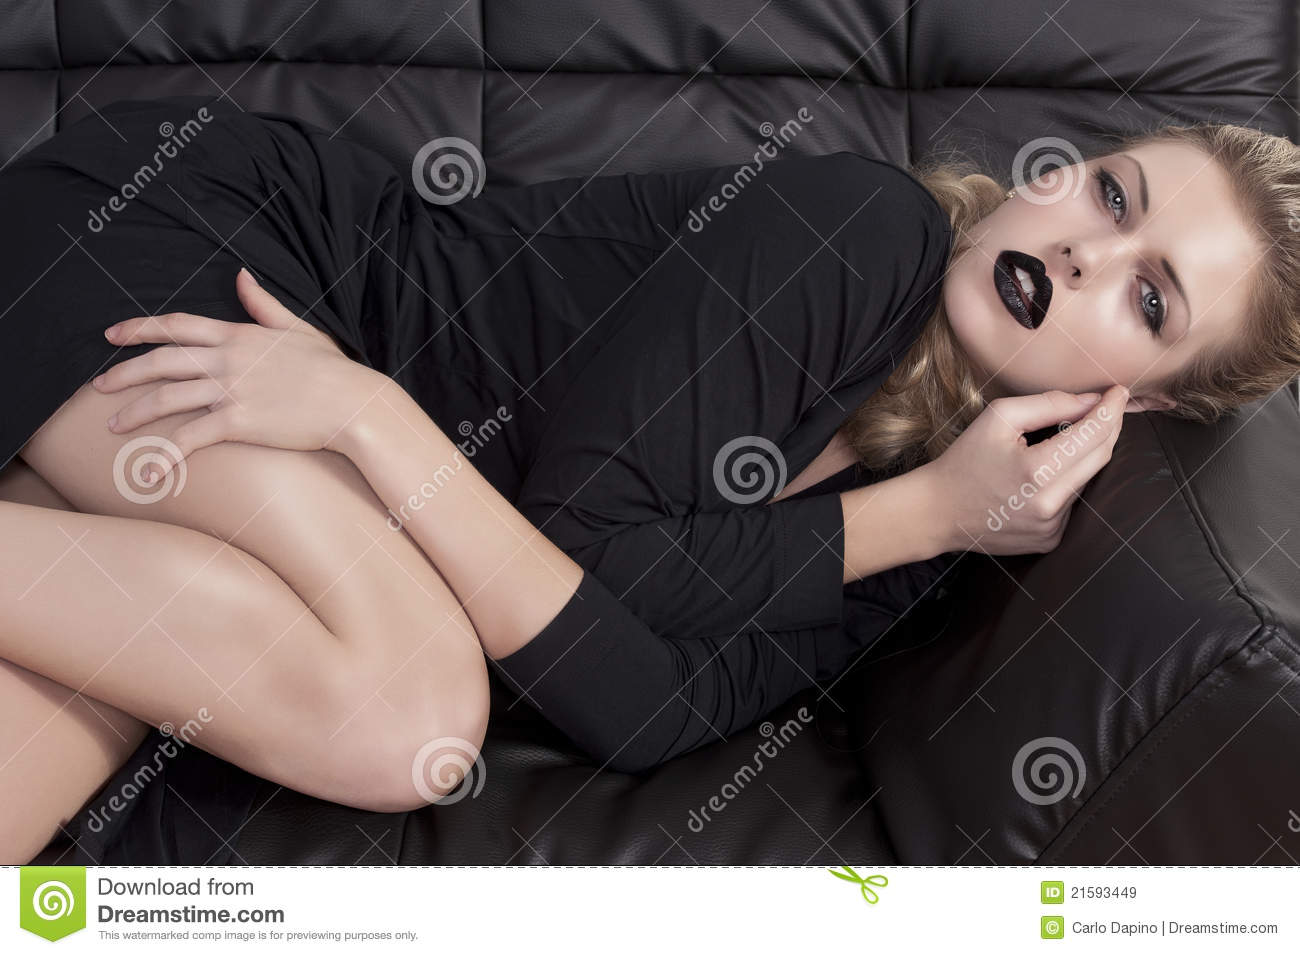 Free Sexmovie Blond Sofa Blonde Girl Laying On A Black Sofa Stock Image - Image Of